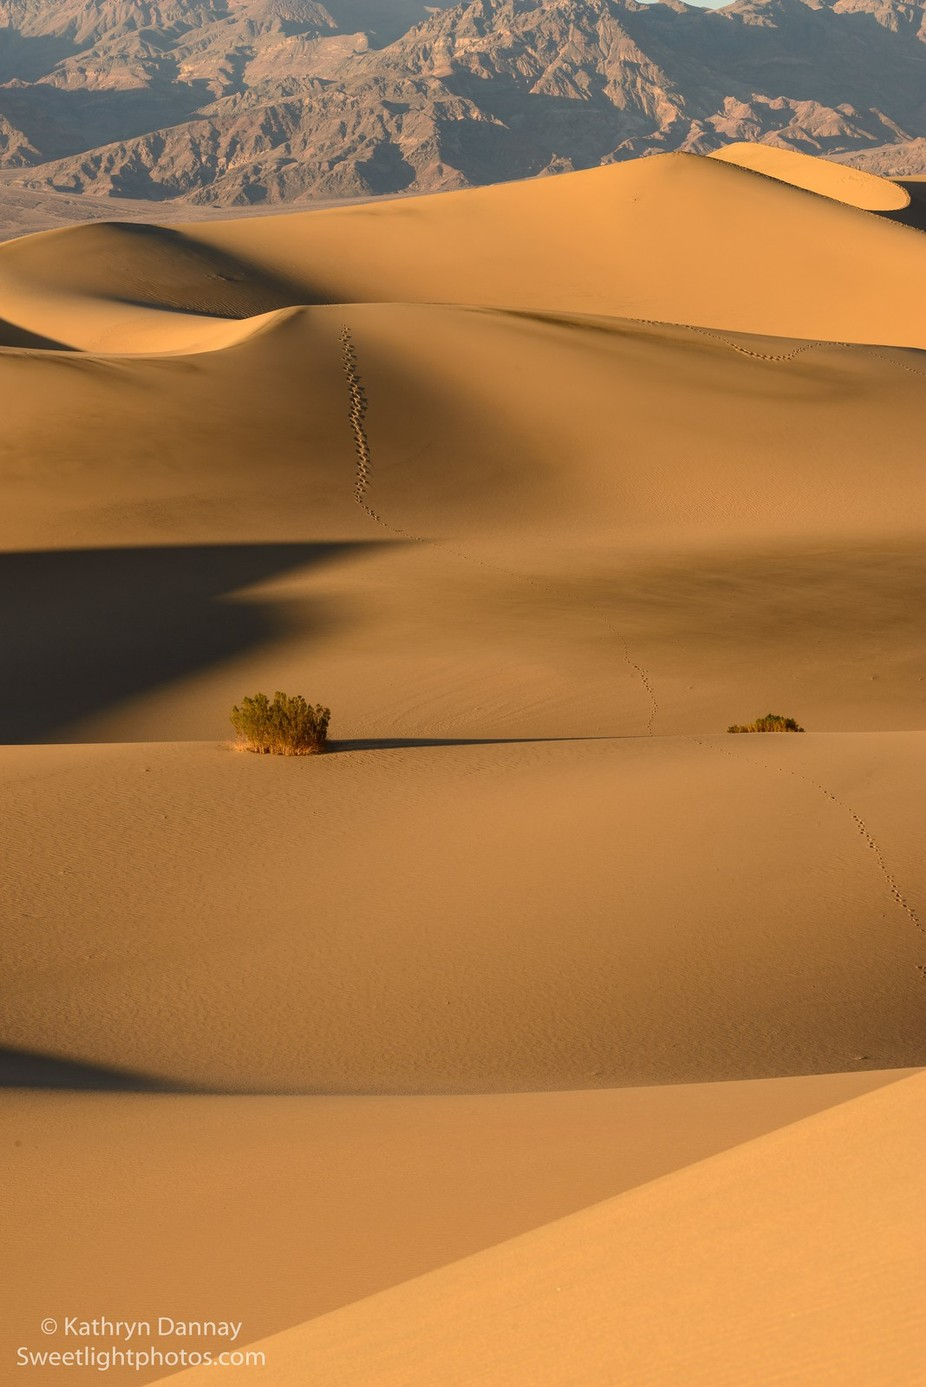 Desert Abstracts by kathrynsklenakdannay - Landscapes And Sand Photo Contest